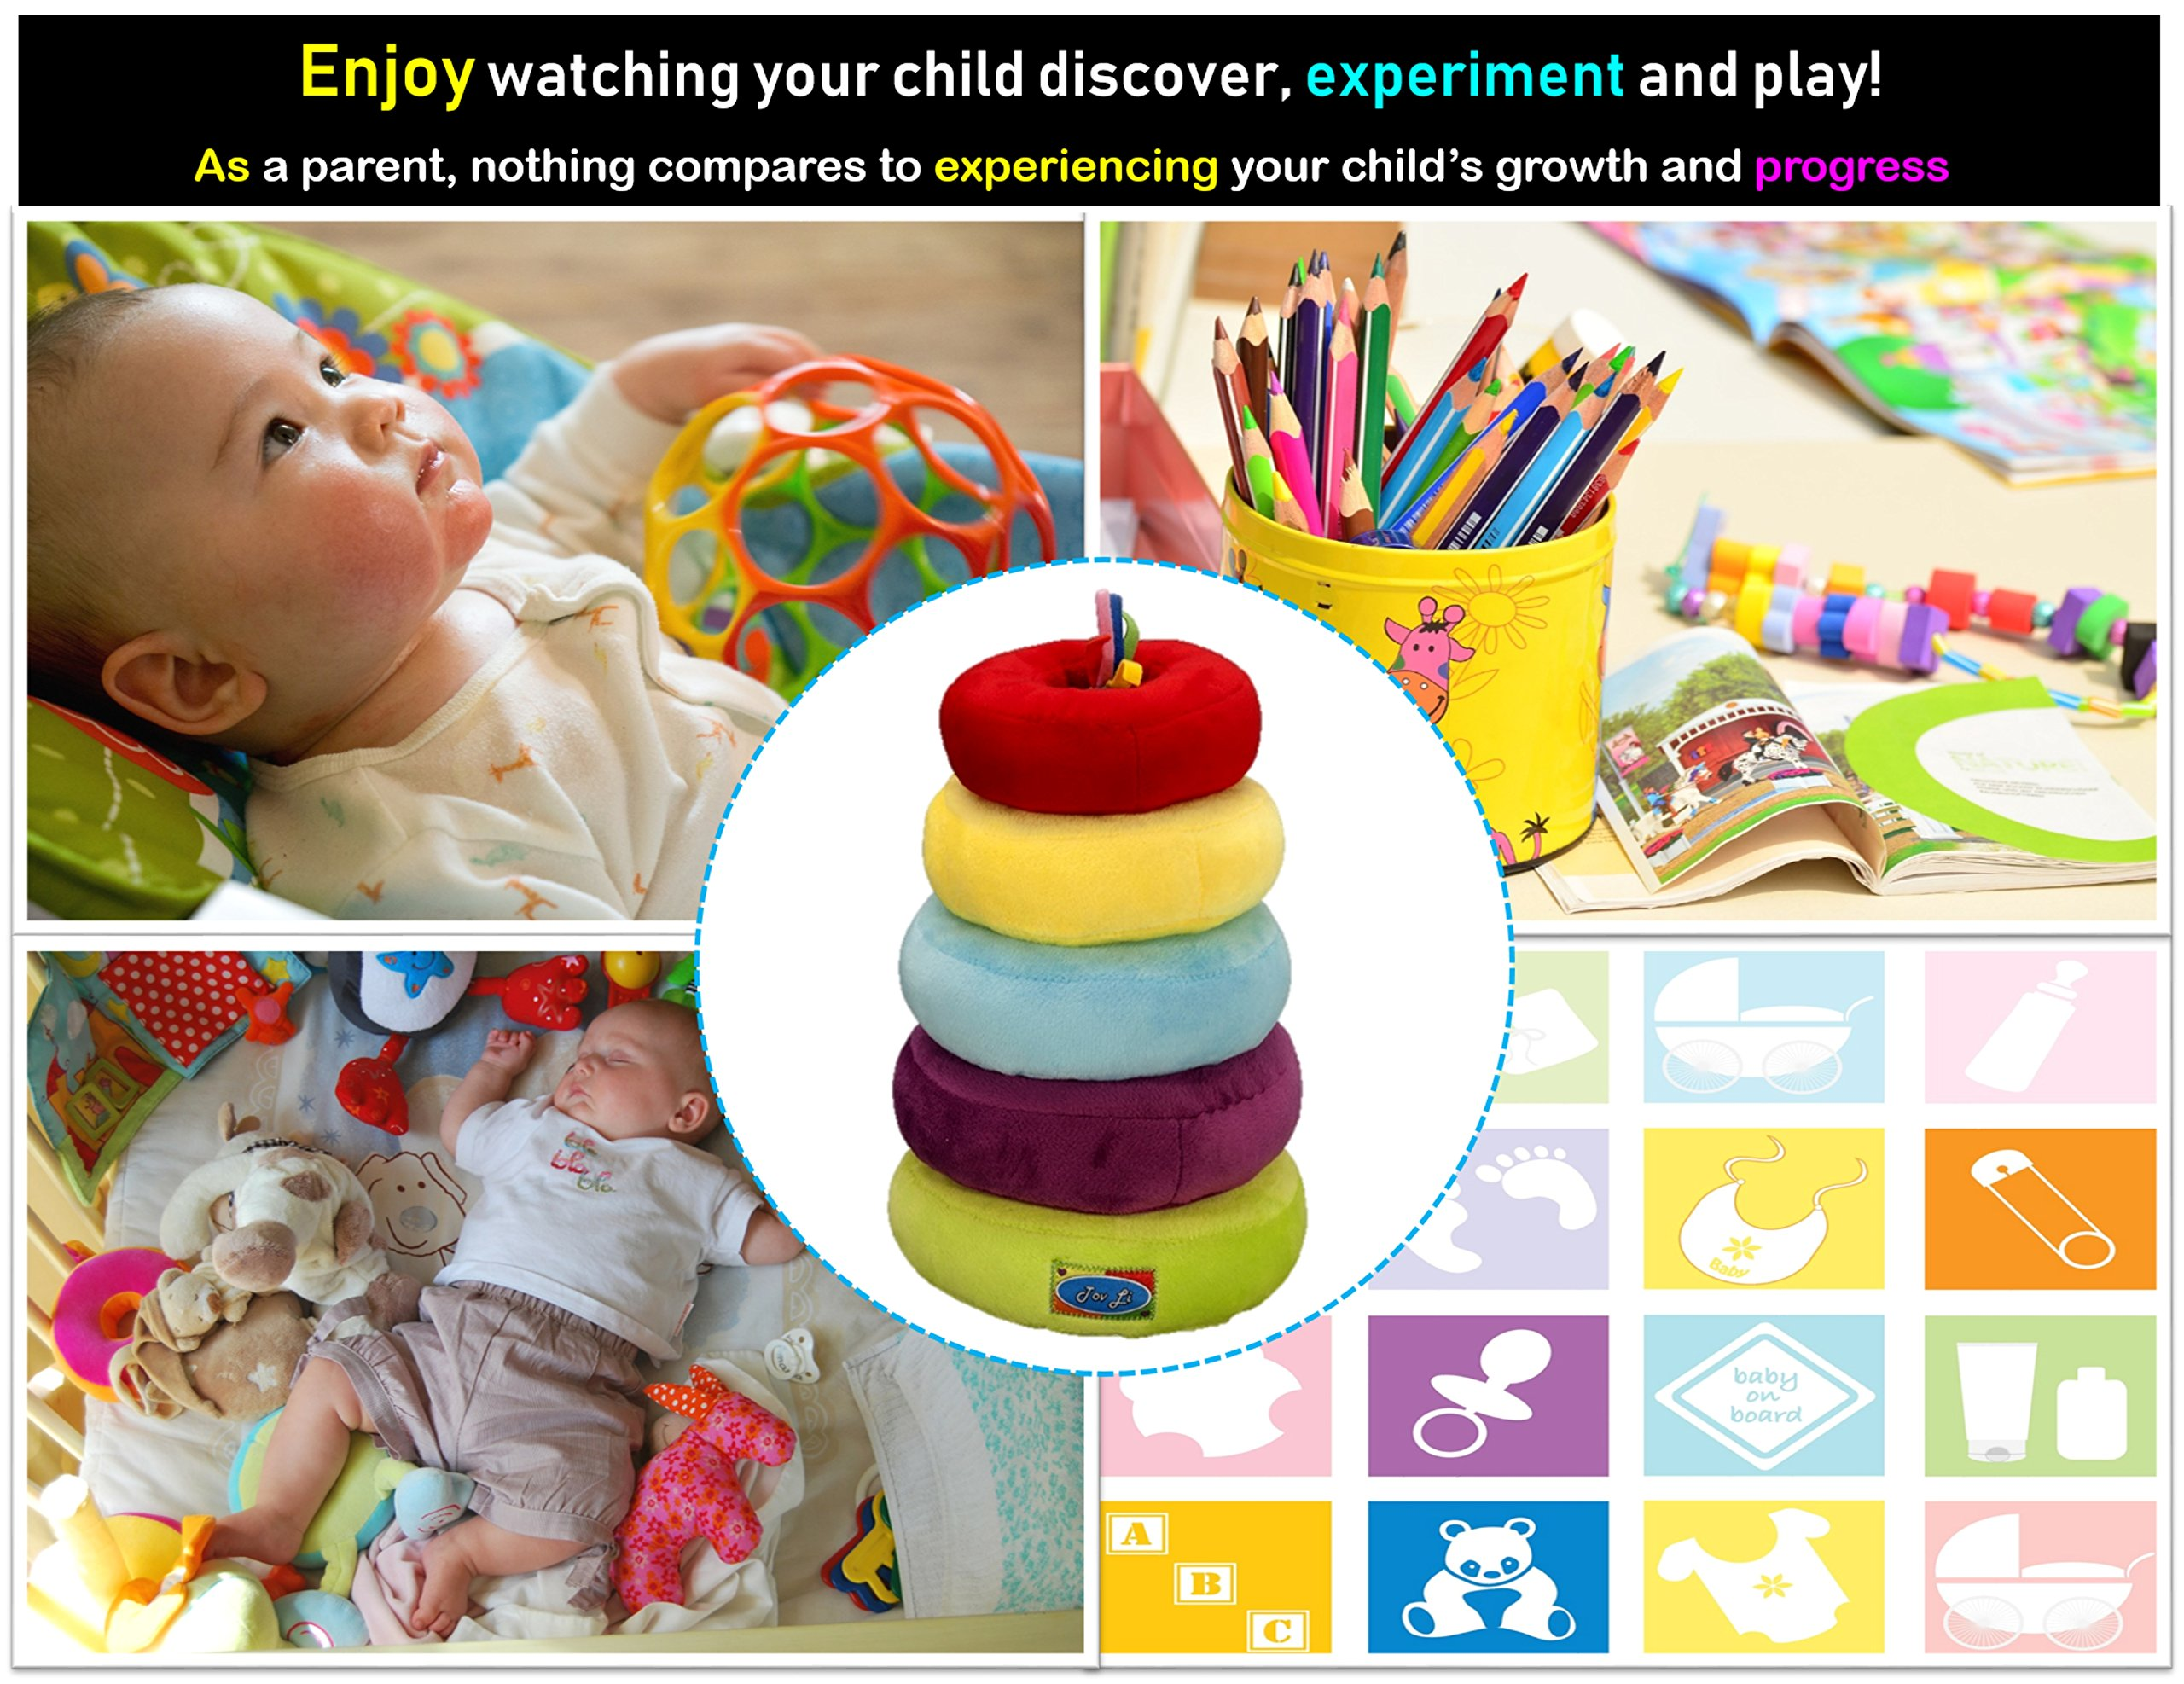 Stacking Rings Toys - Soft Stuffed Plush Educational Game for Baby Infant Toddler Kids and Young Children , Safe Colorful Shape Sorting Stacker Play for Boys and Girls.. The by Tov Li Toys (Image #2)